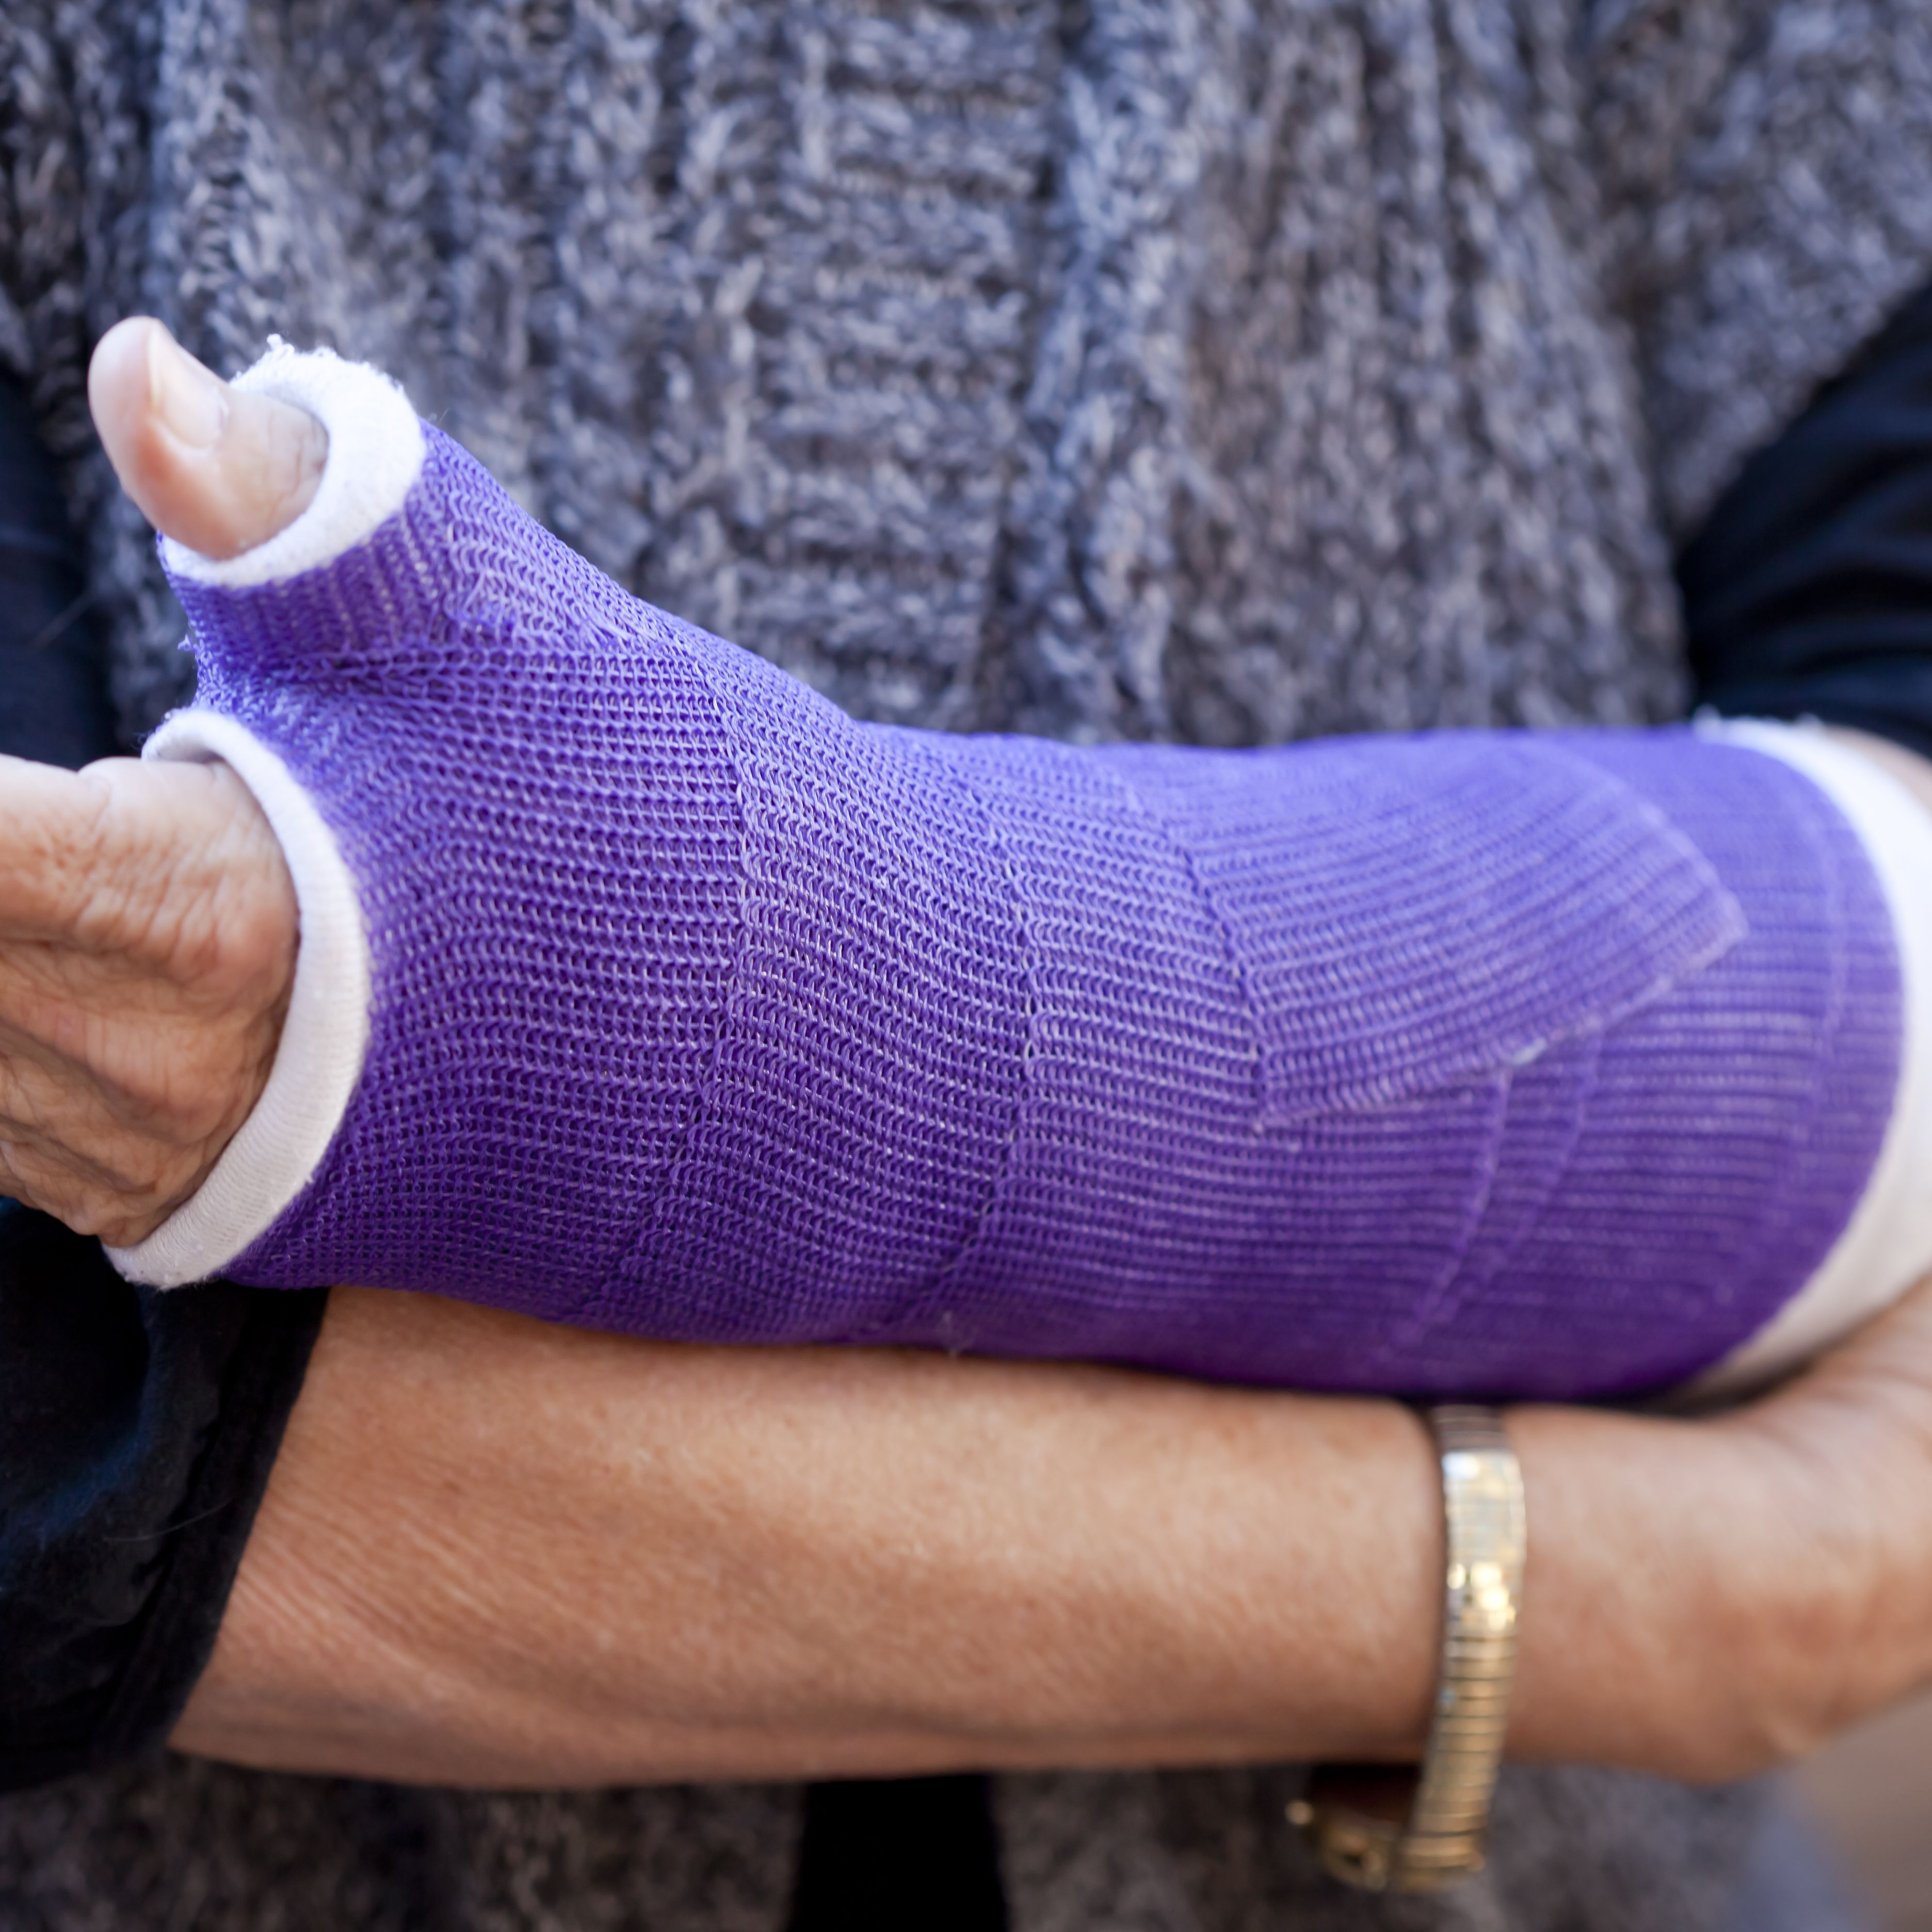 Signs That You Might Have a Fracture